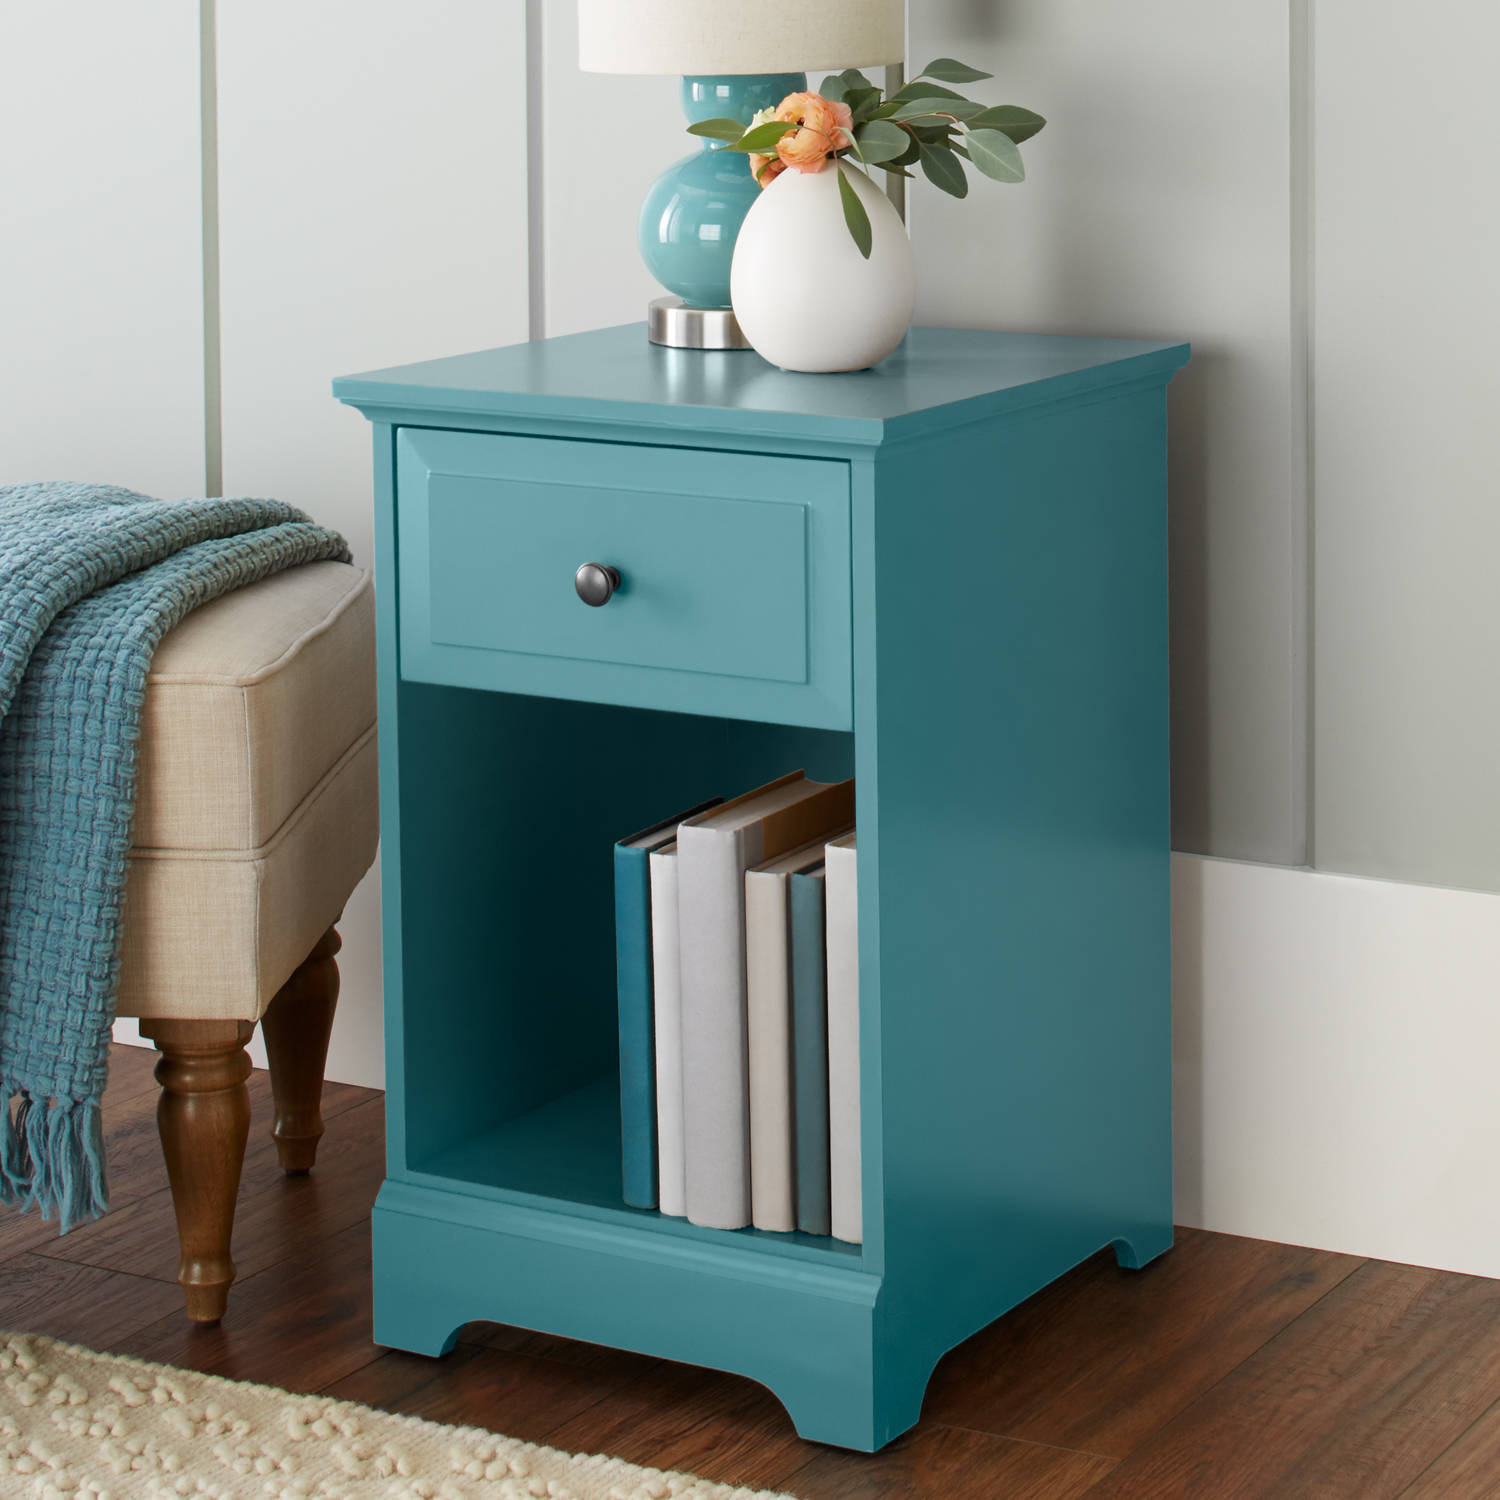 Better Homes & Gardens Savannah Accent Table, Teal